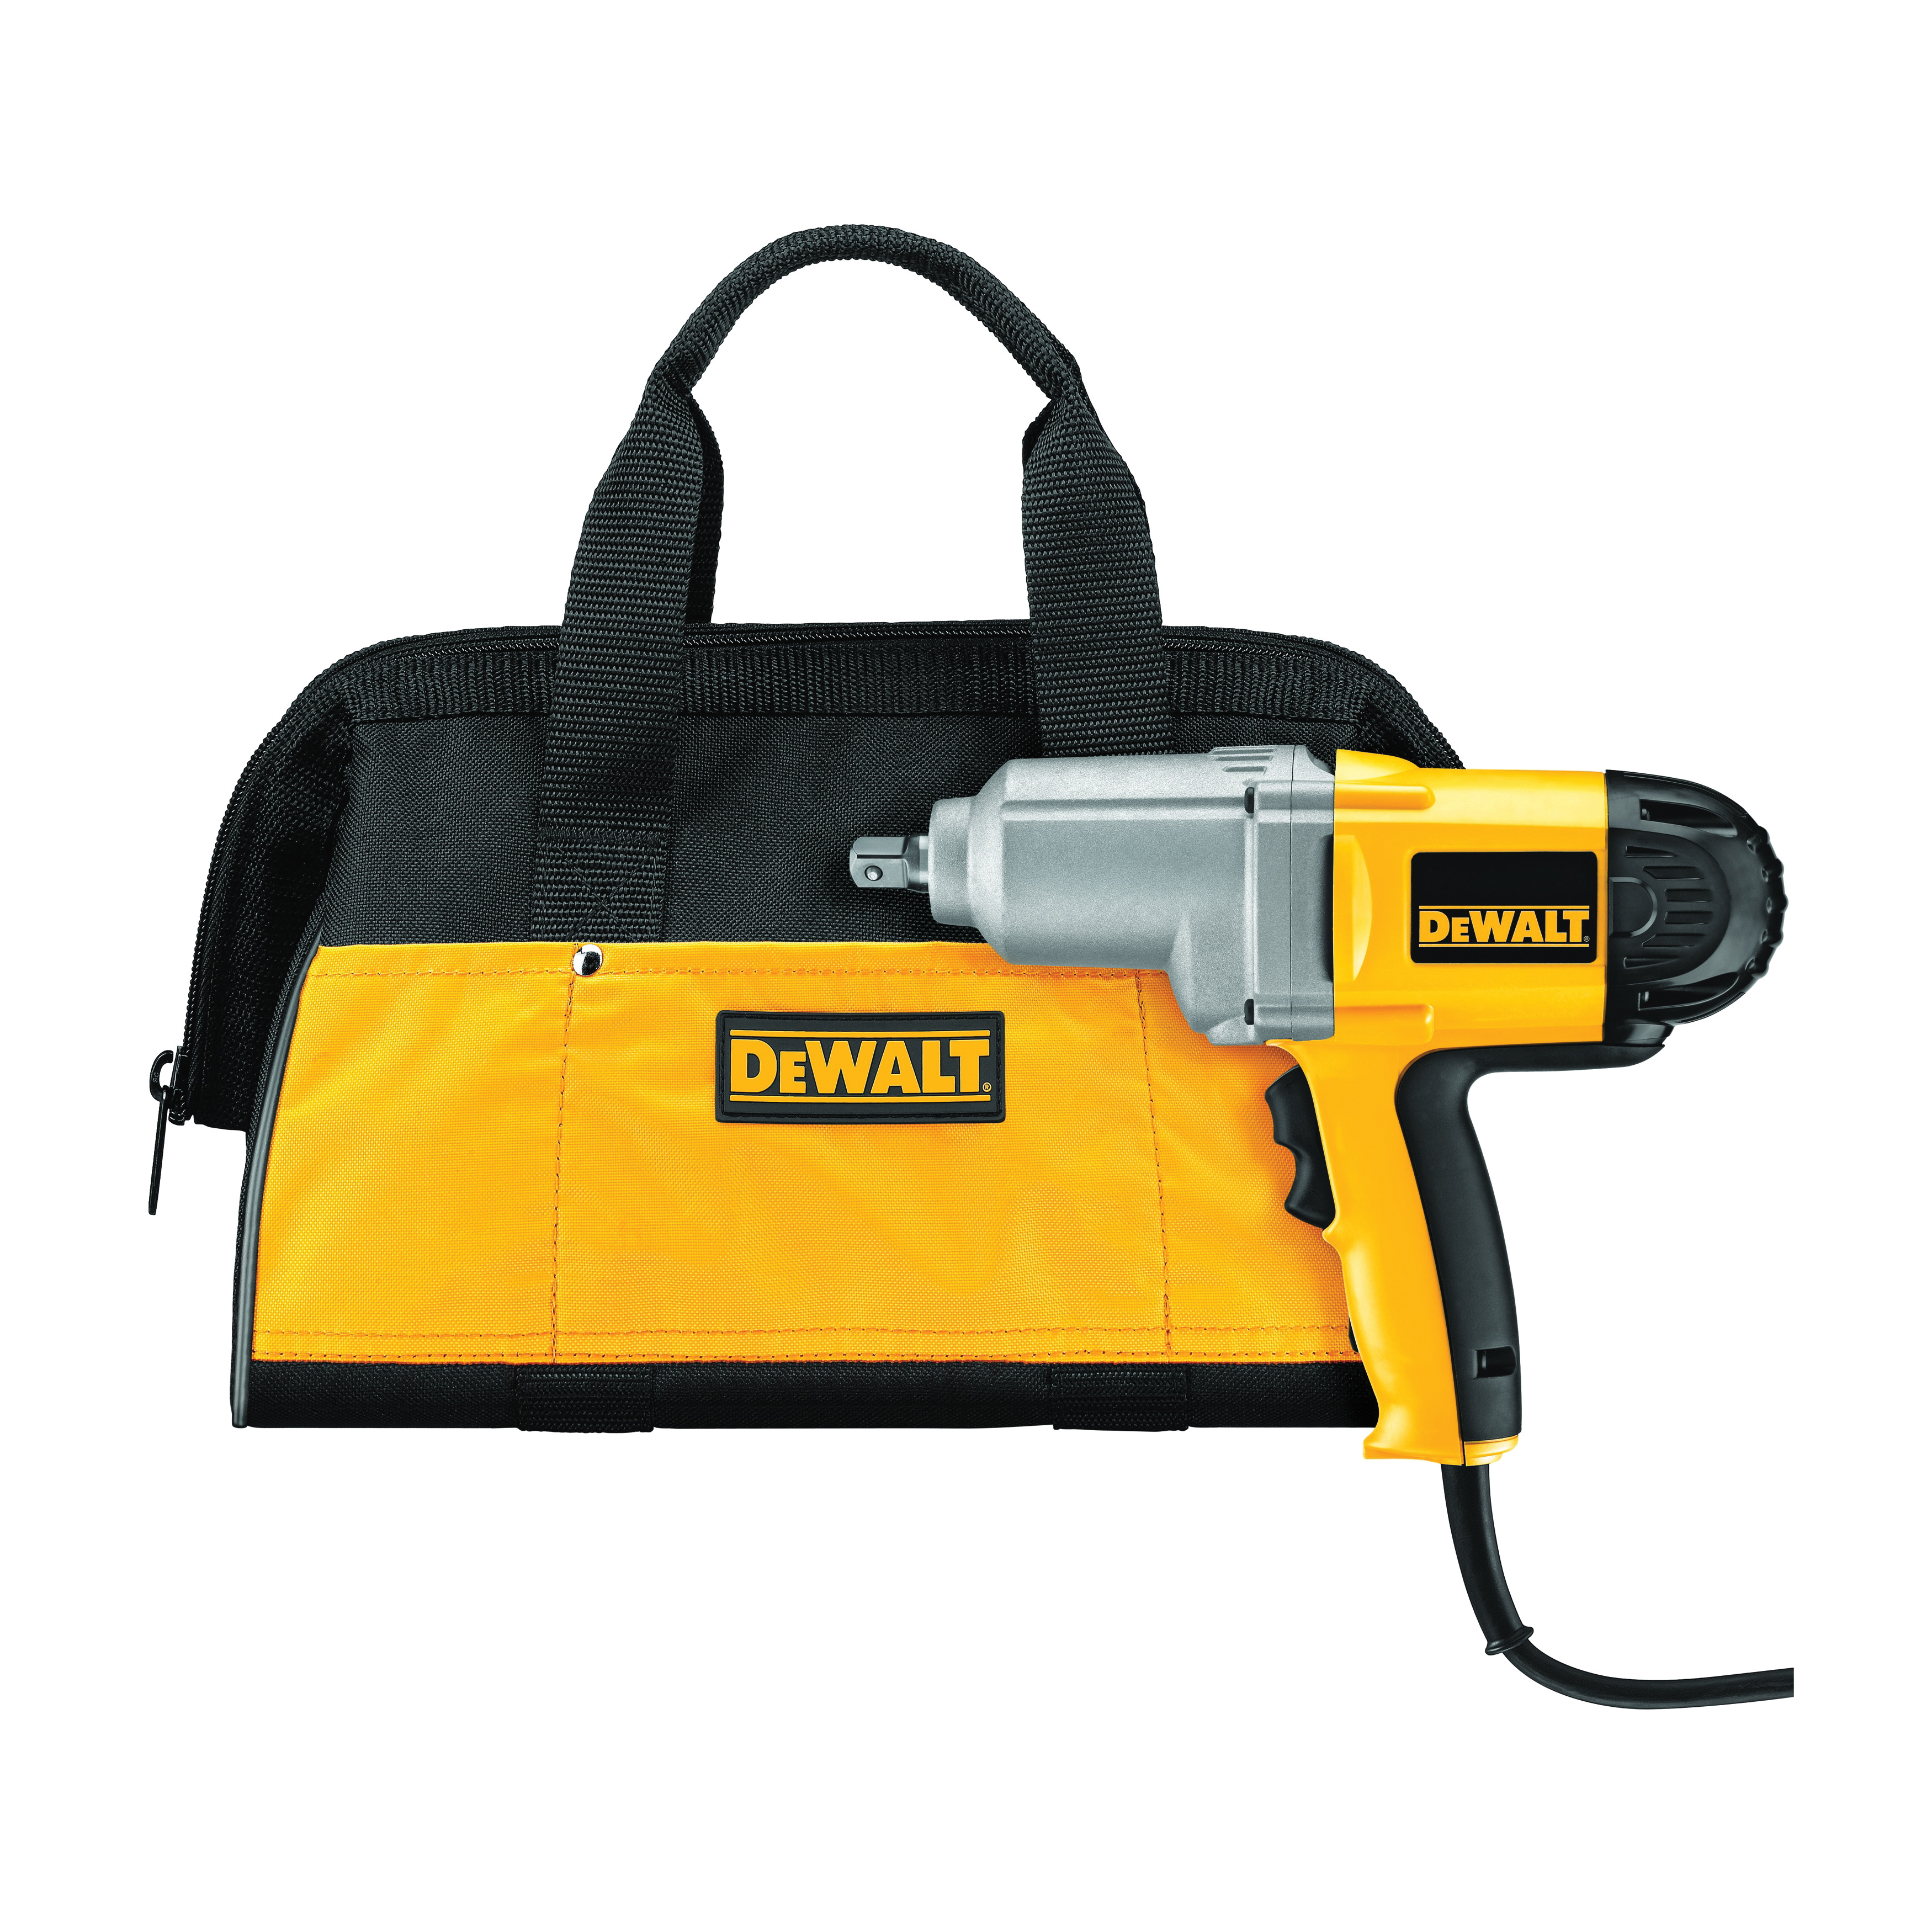 DeWALT® DW292K Corded Impact Wrench Kit With Detent Pin Anvil, 1/2 in Straight Drive, 2700 bpm, 345 ft-lb Torque, 120 VAC, 11-1/4 in OAL